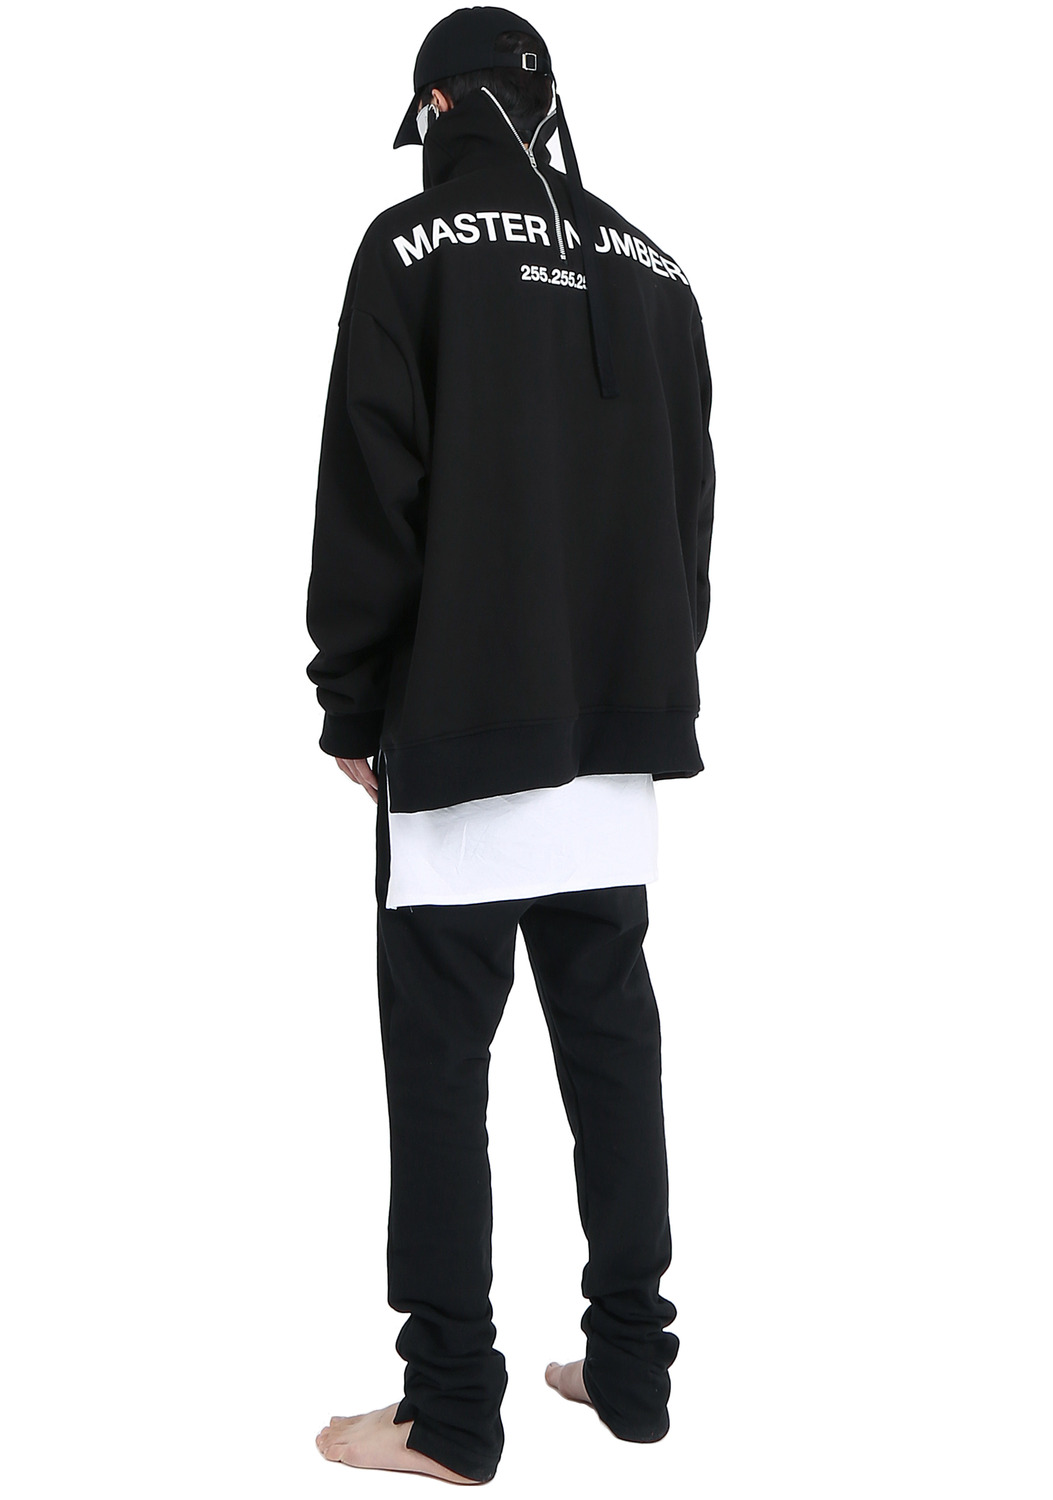 MASTER NUMBER HIGH NECK BACK ZIPPER SWEAT SHIRTS